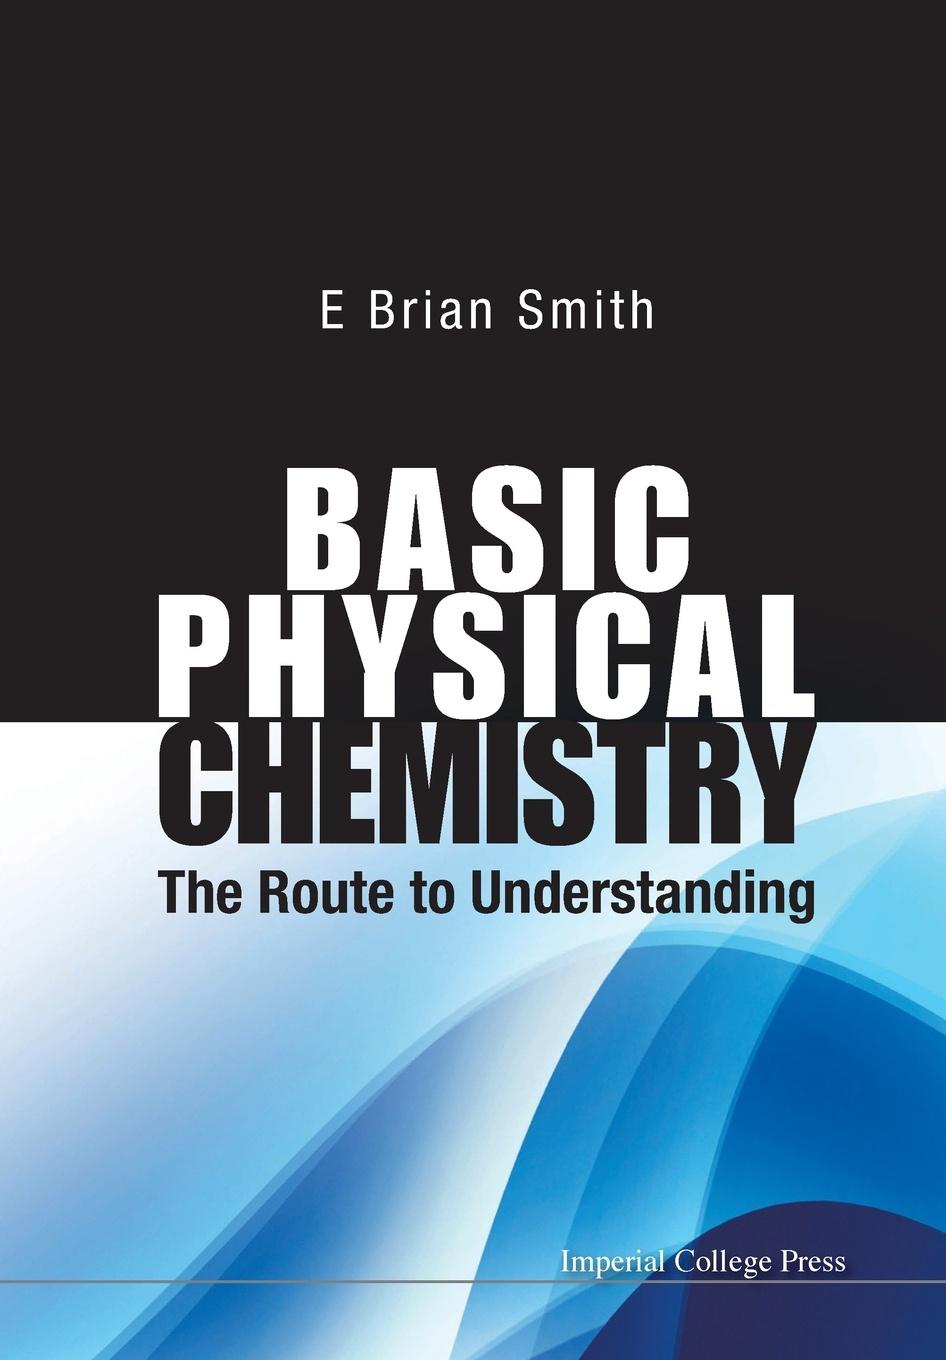 E BRIAN SMITH BASIC PHYSICAL CHEMISTRY. THE ROUTE TO UNDERSTANDING kurt kolasinski w physical chemistry how chemistry works